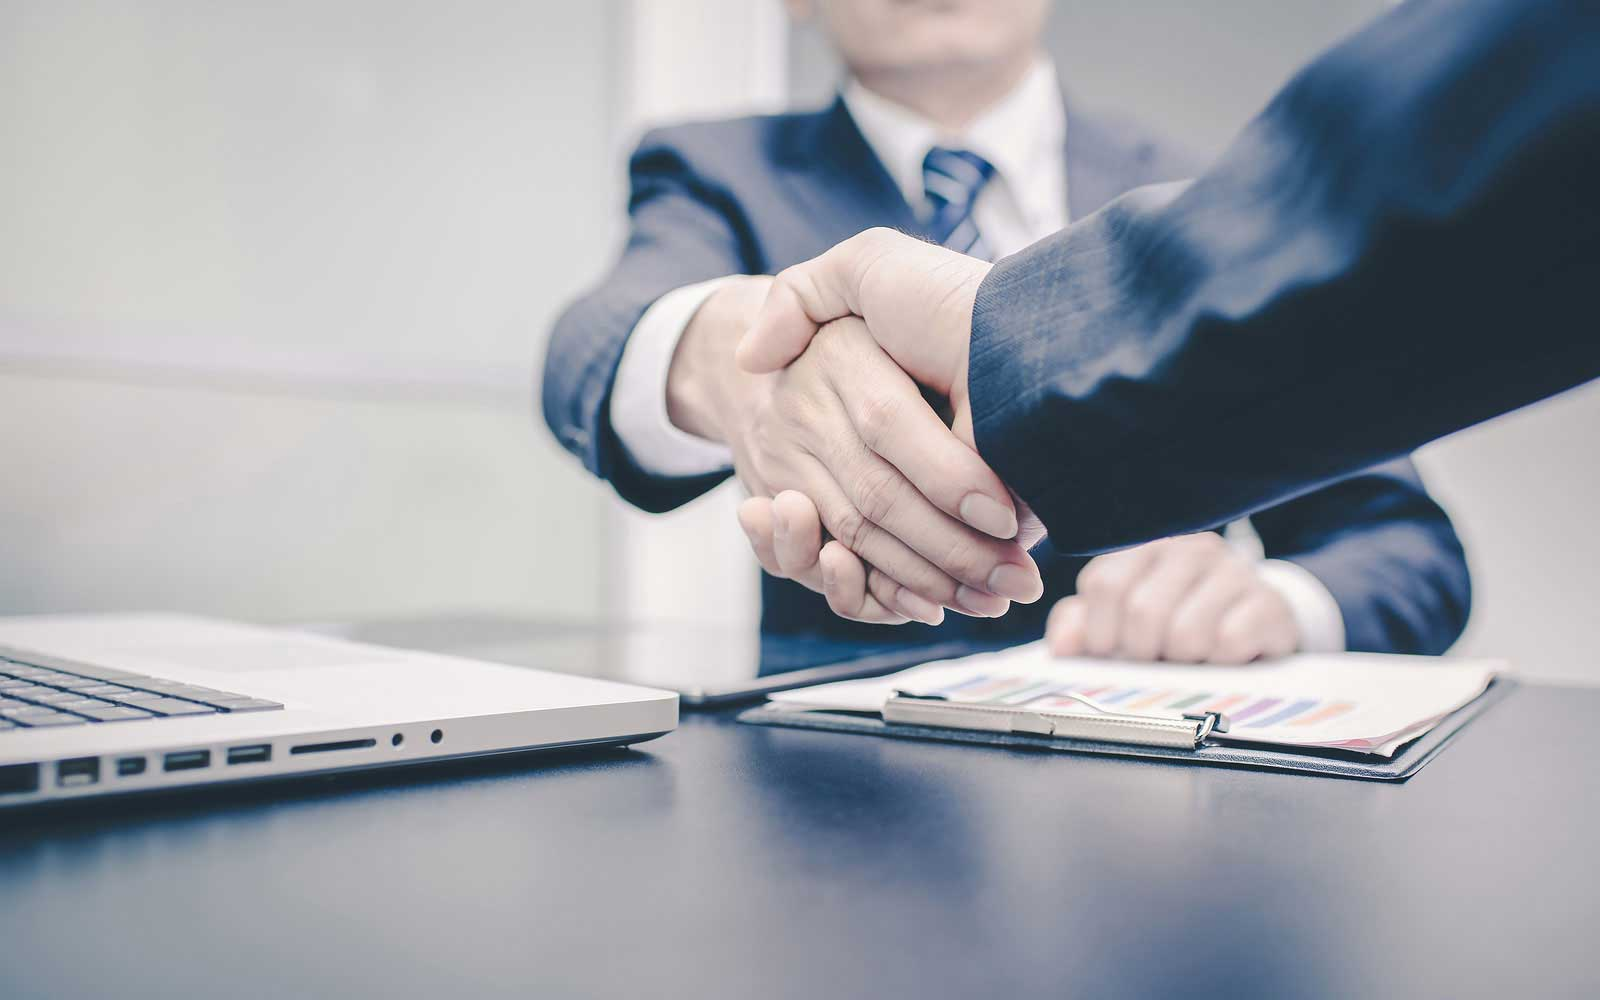 The Entrepreneur's Guide to the Most Important Provisions in Typical Business Contracts